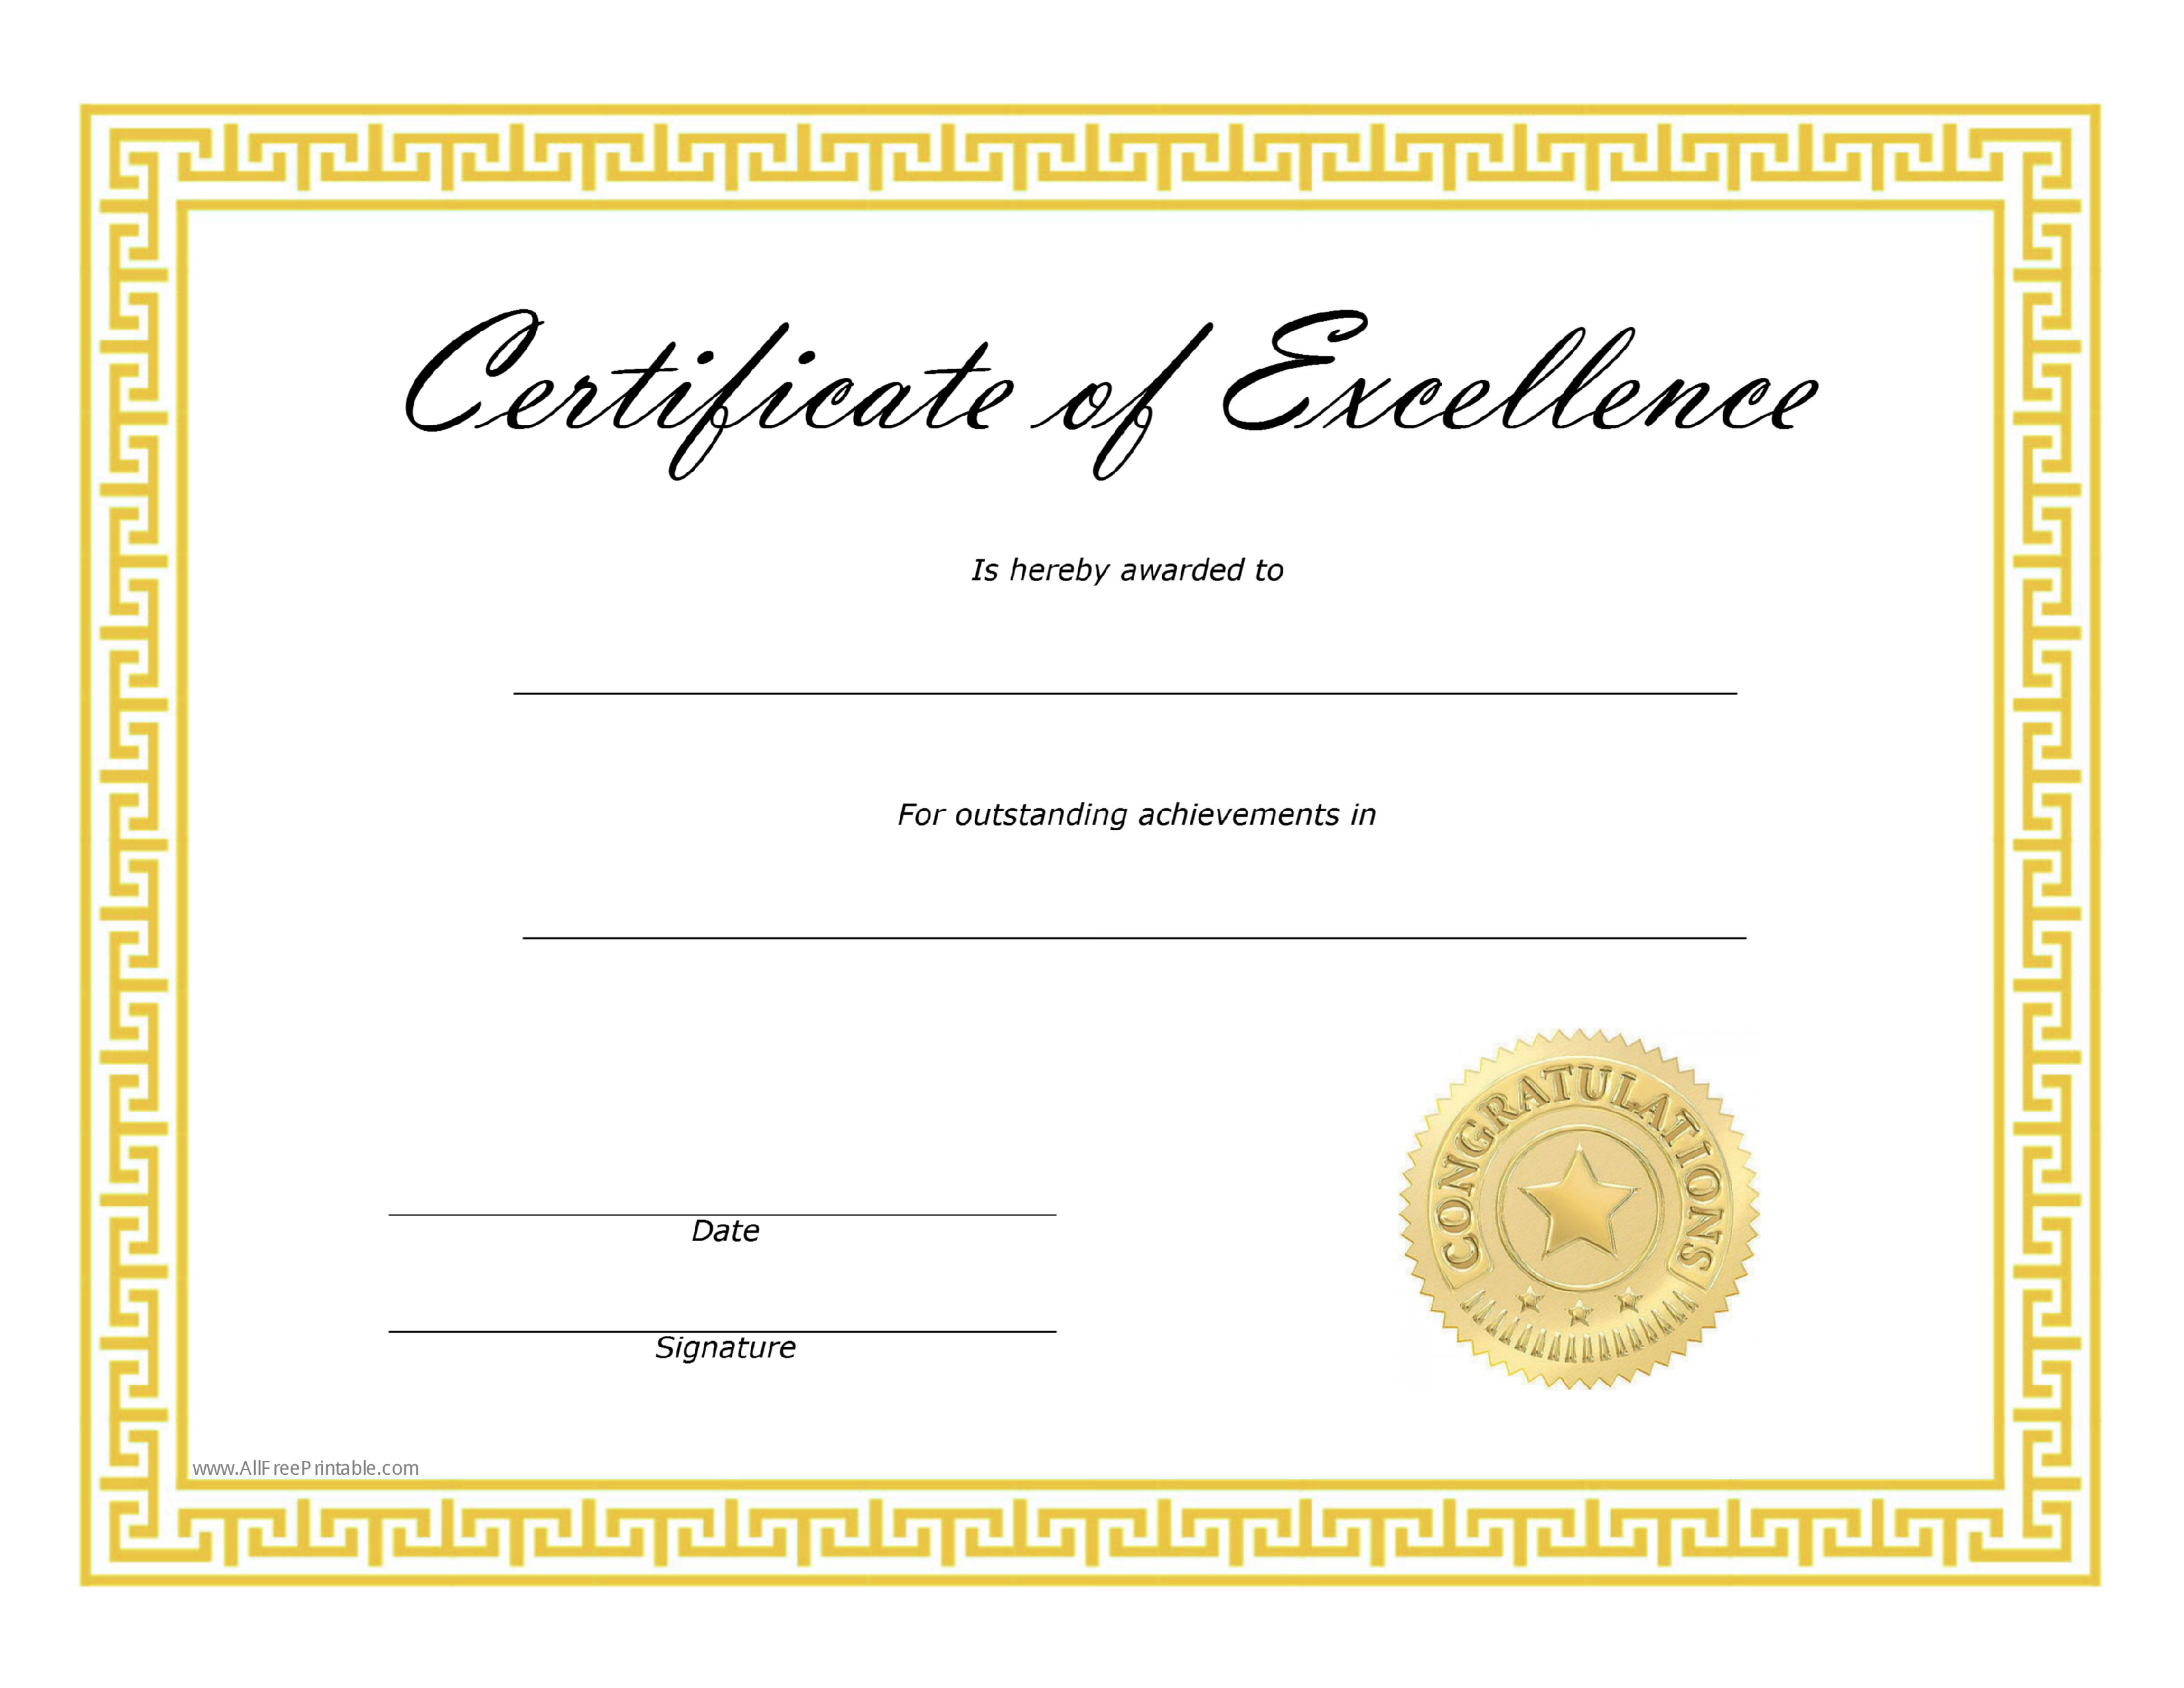 Free Certificate Template Free Certificate Of Excellence Templates At